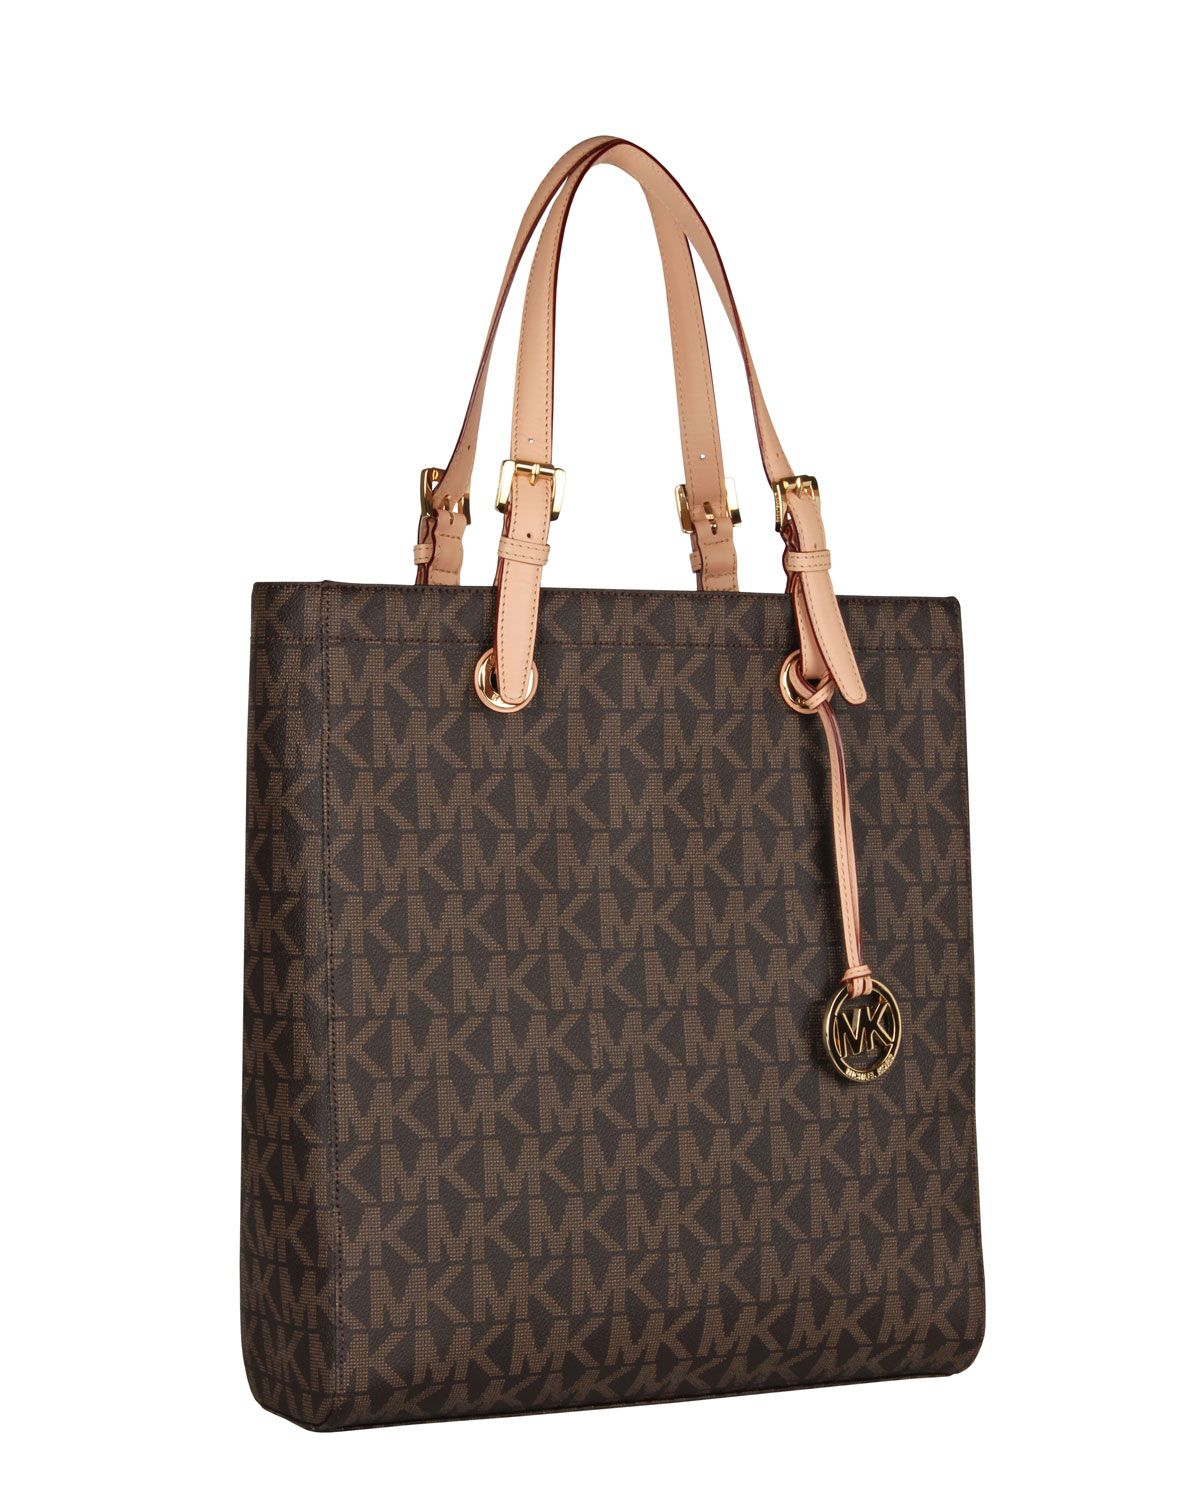 47268778ab7c Buy michael kors tote bag brown > OFF65% Discounted